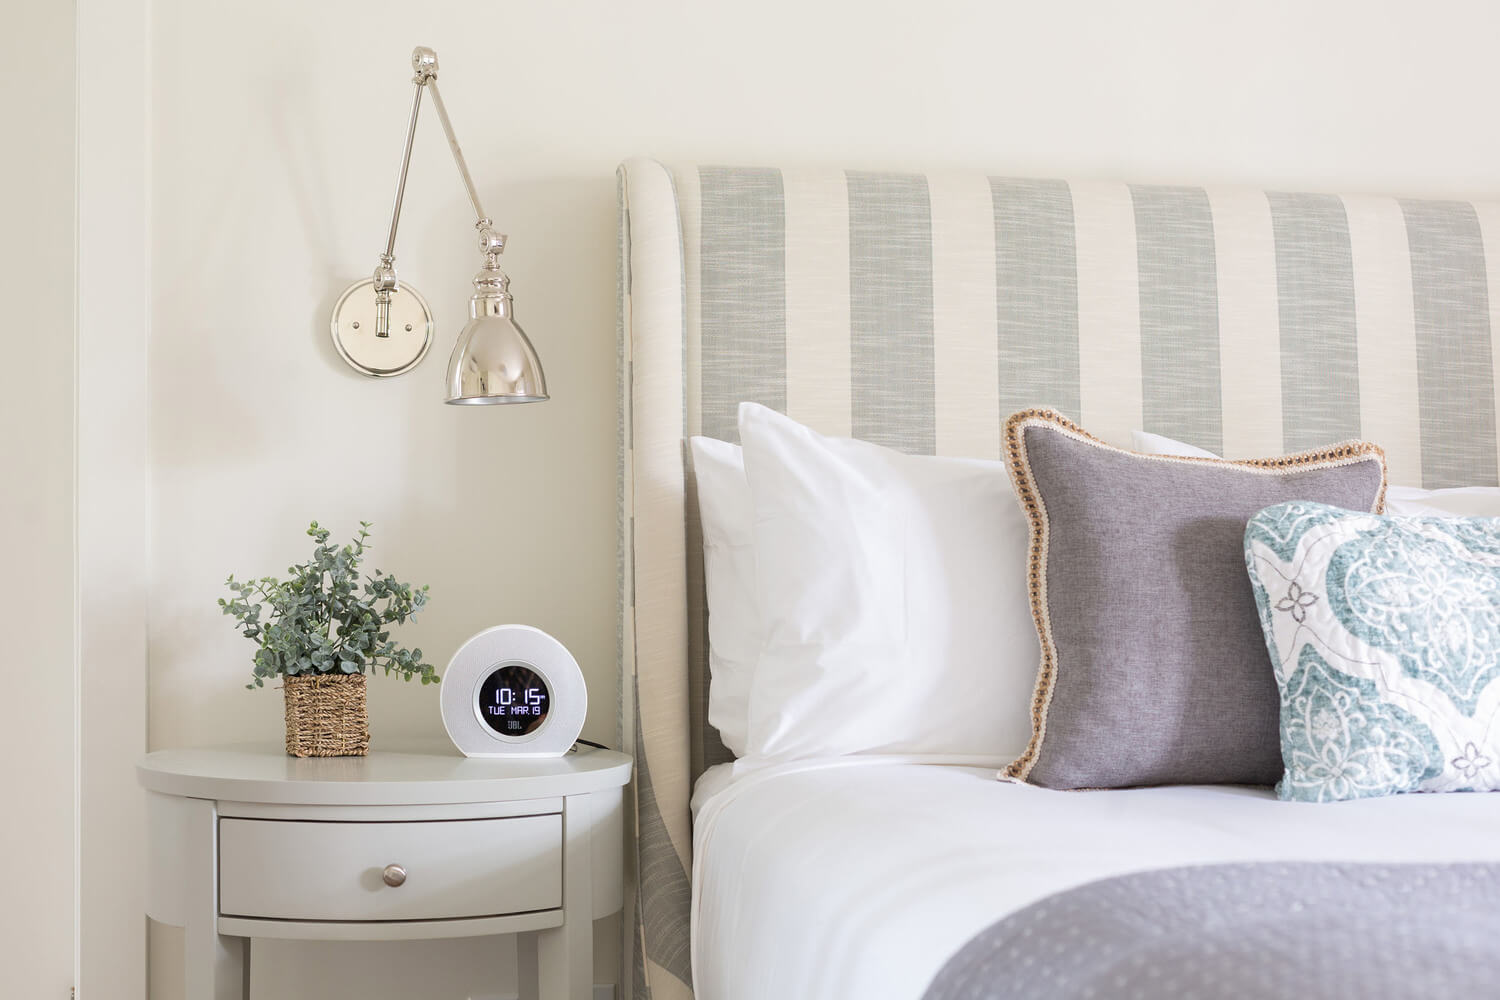 close up of bedside table with a plant, clock and lamp